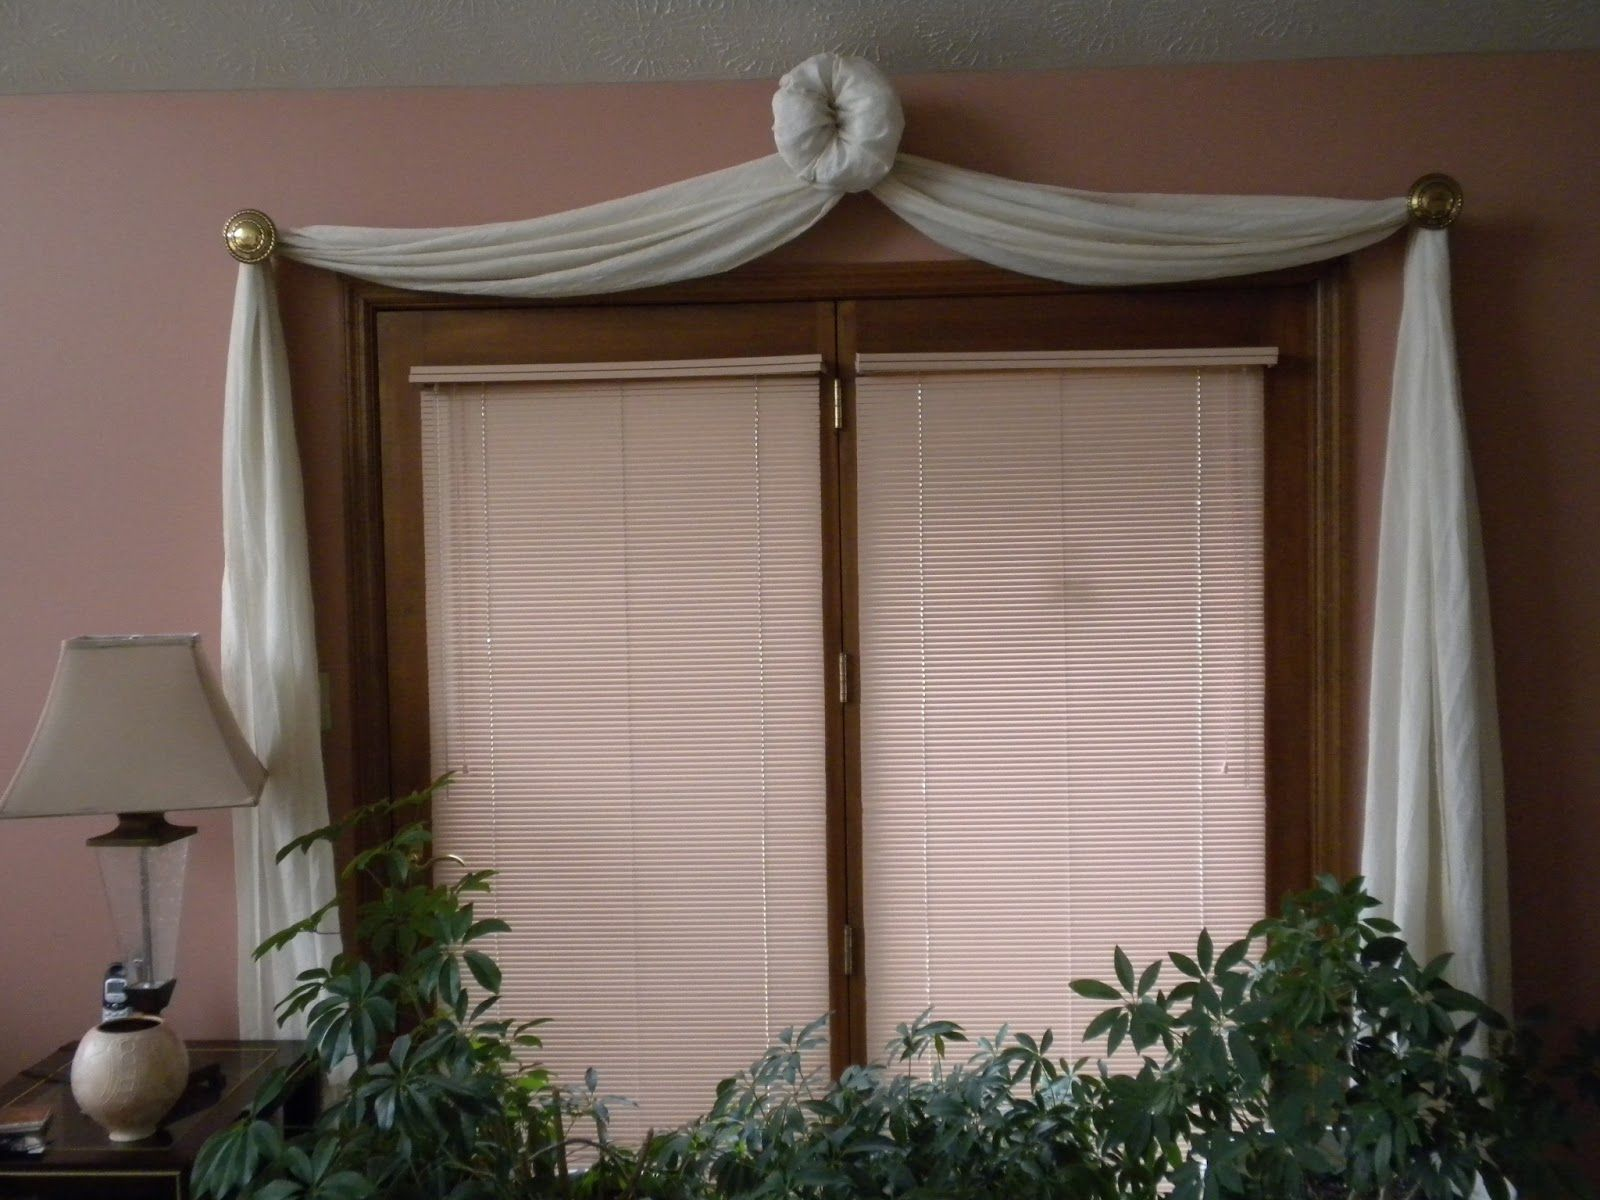 Window Treatments For French Doors To A Patio Third Treatment